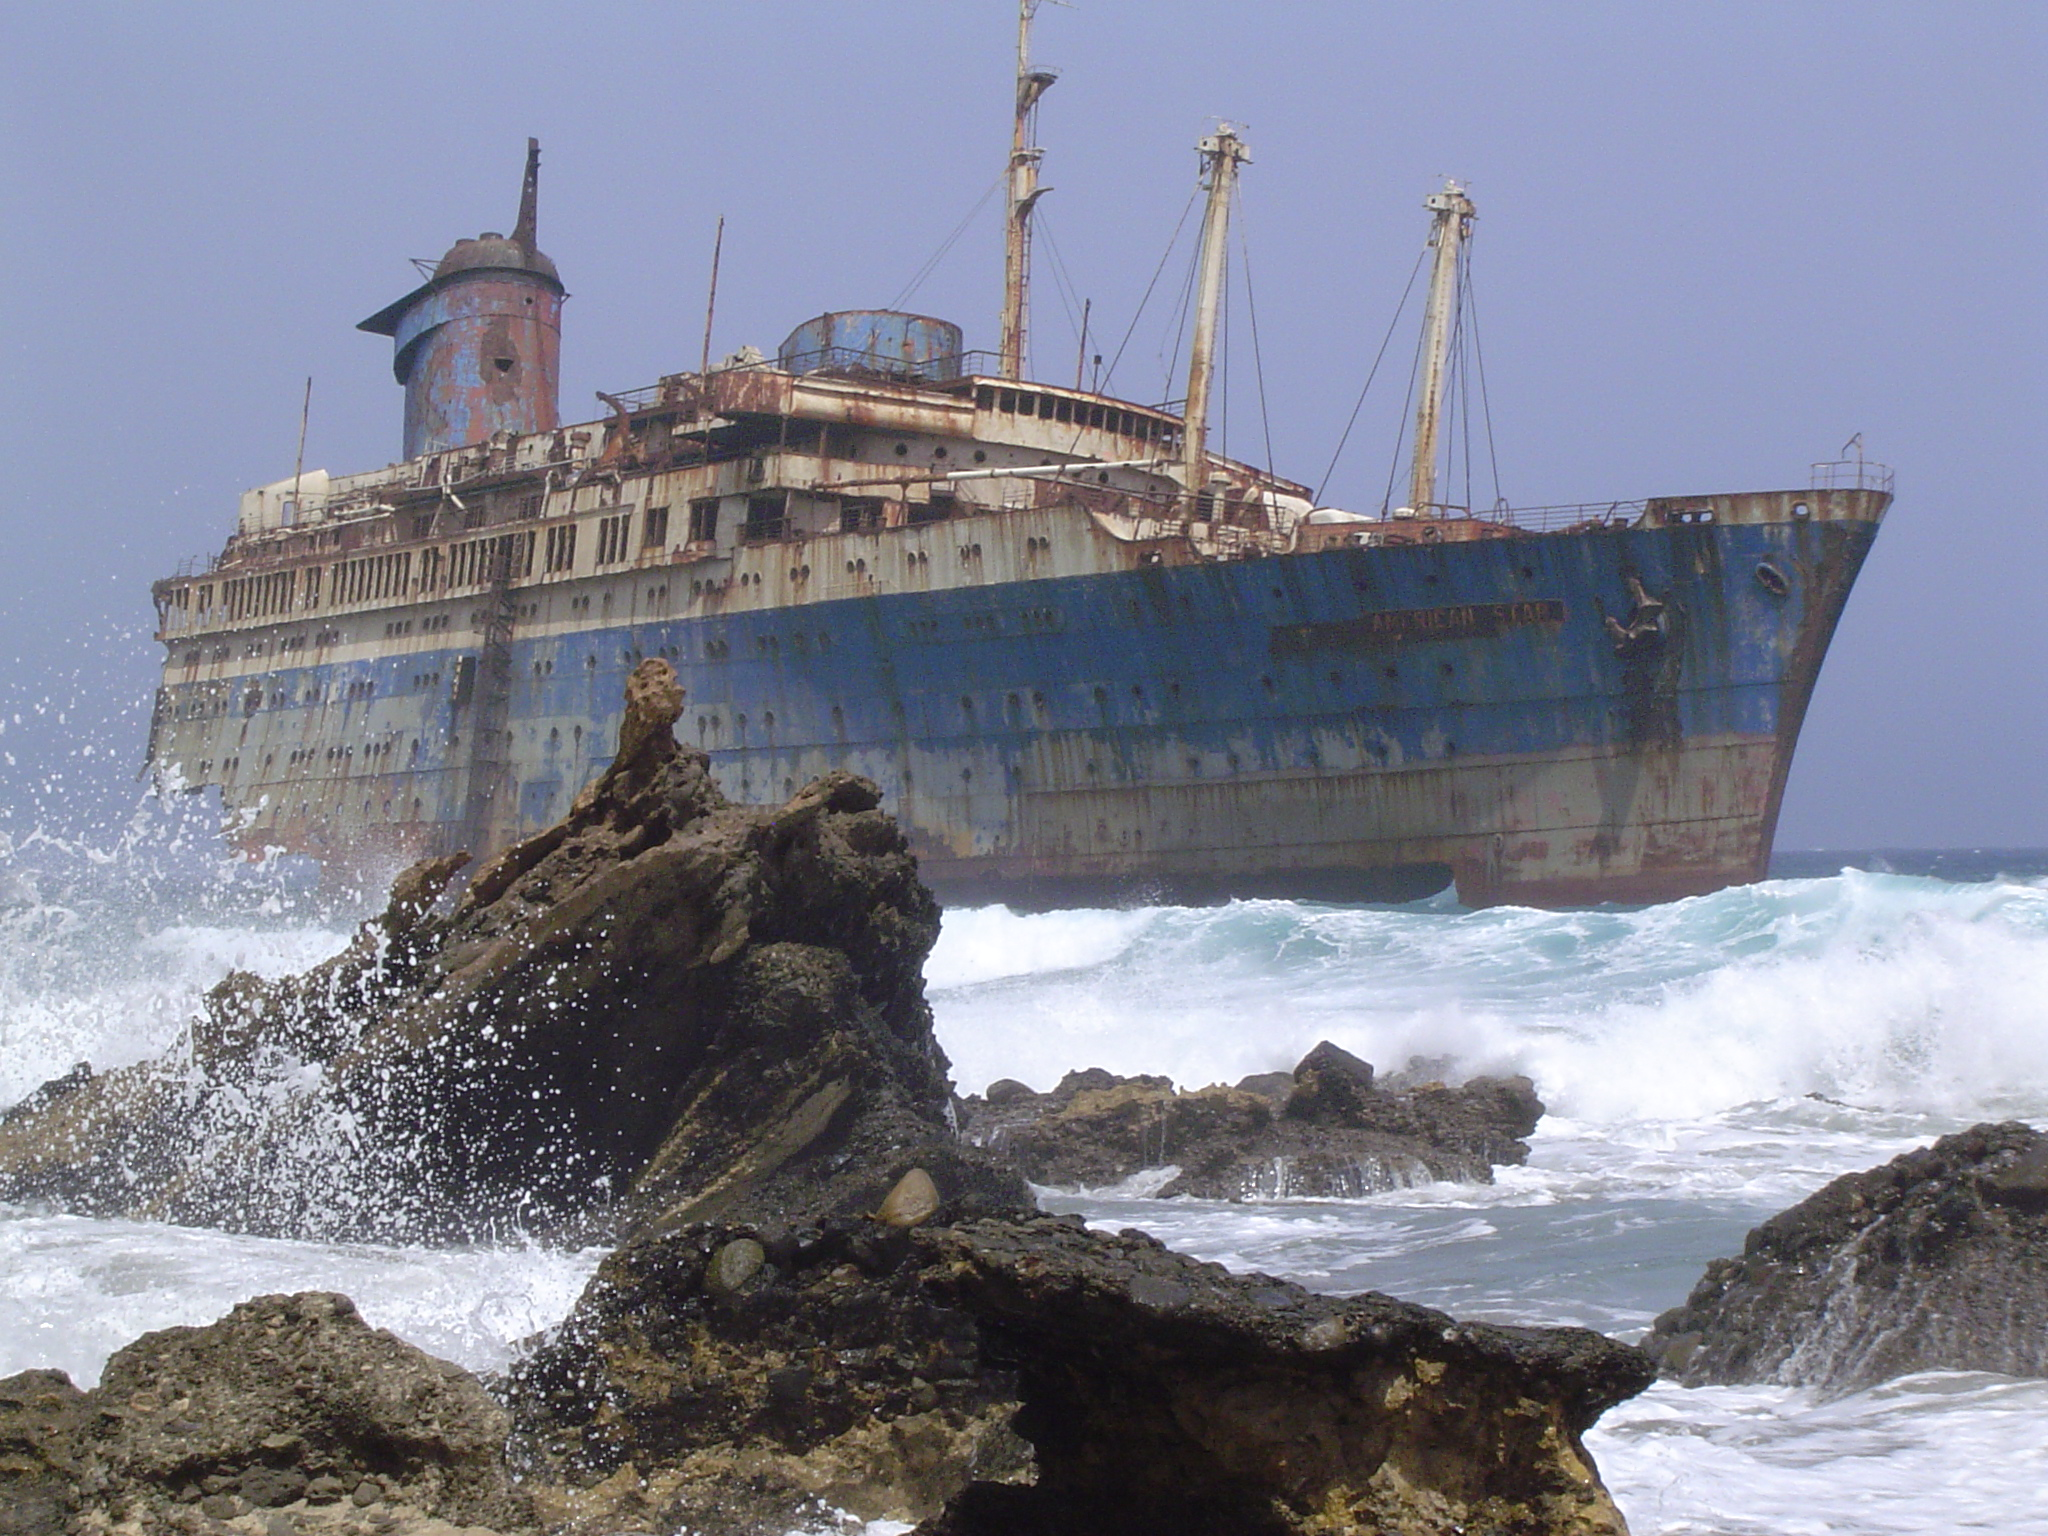 File Shipwreck of the SS American Star on the shore of Fuerteventura